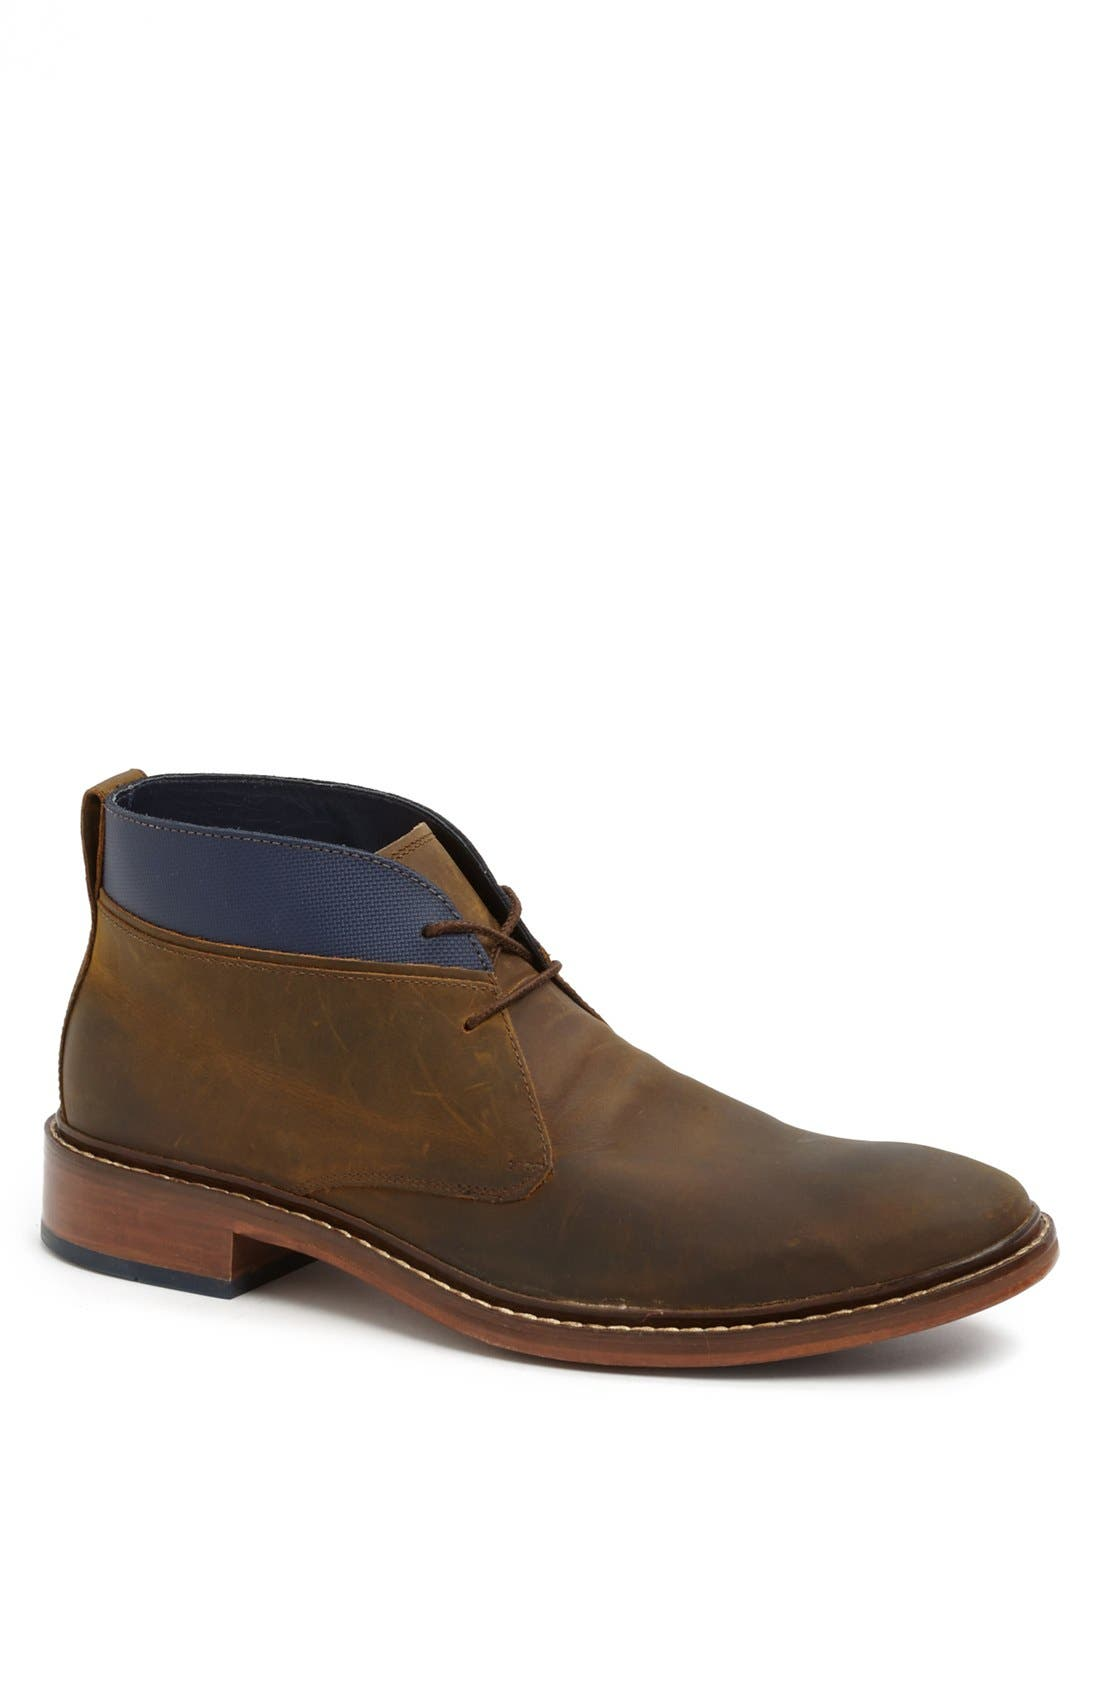 'Colton' Chukka Boot,                             Main thumbnail 1, color,                             COPPER/ PEACOAT LEATHER